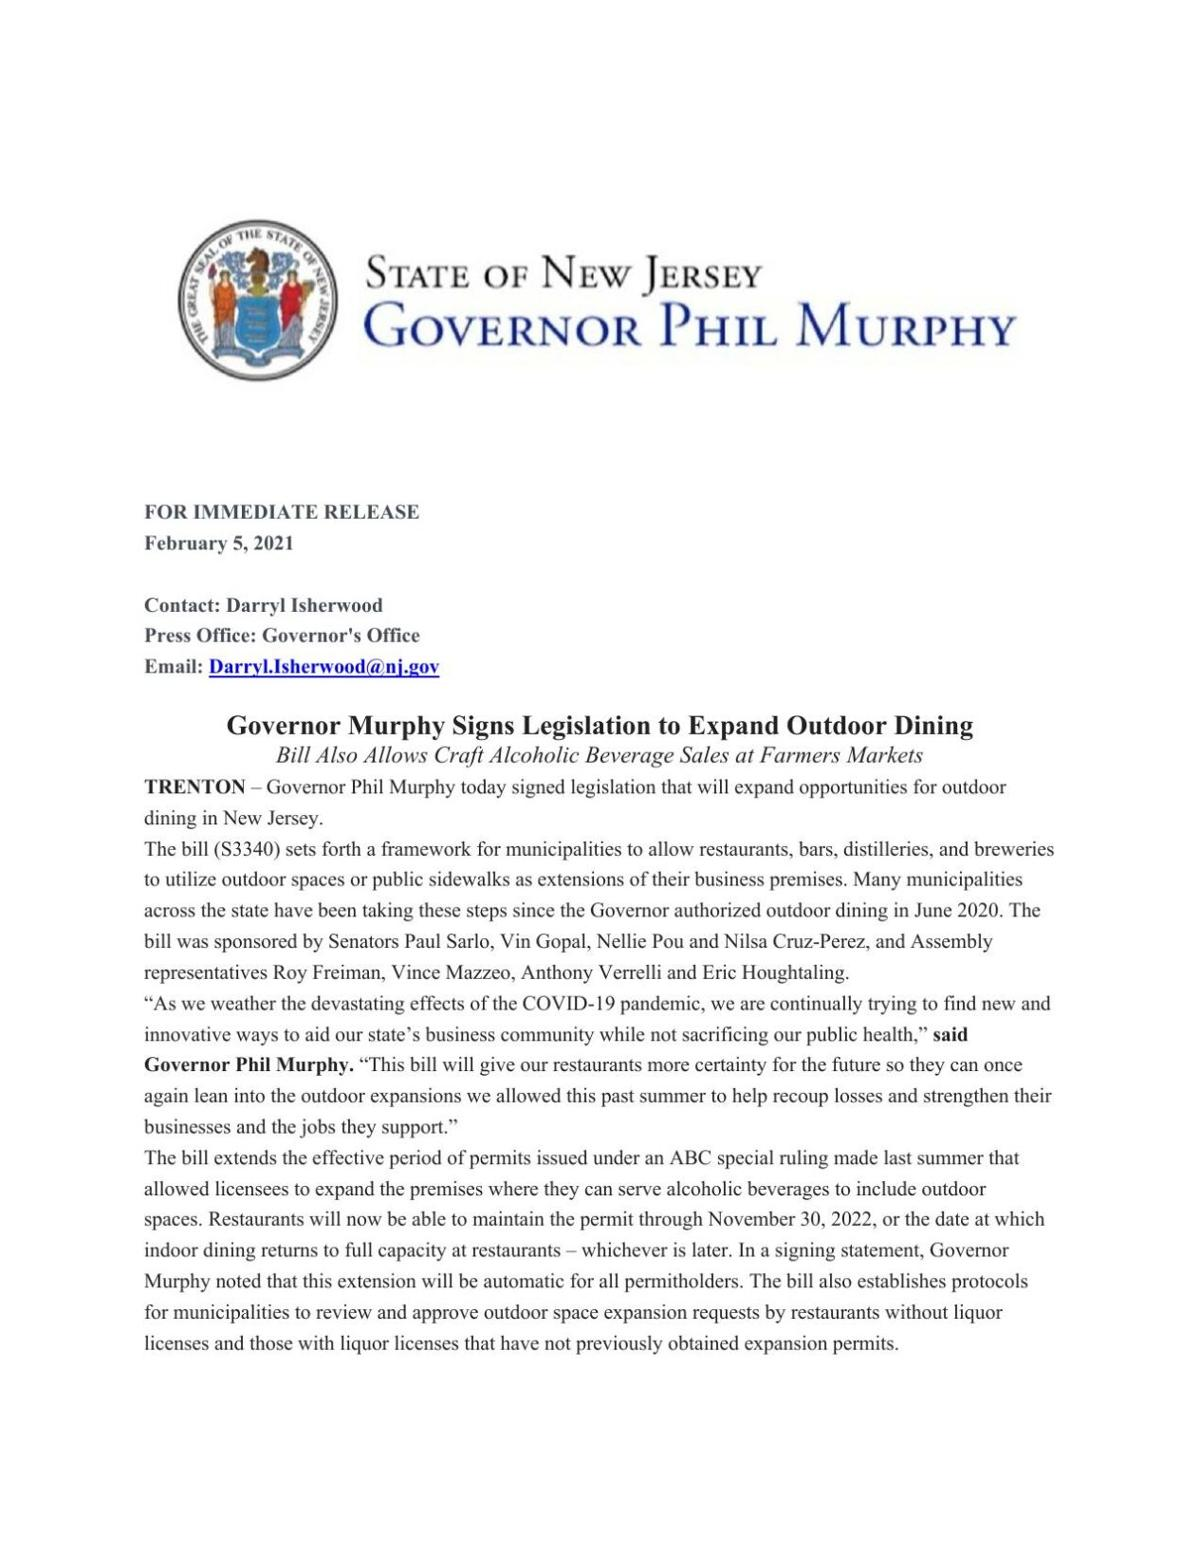 Governor's news release on outdoor dining law.